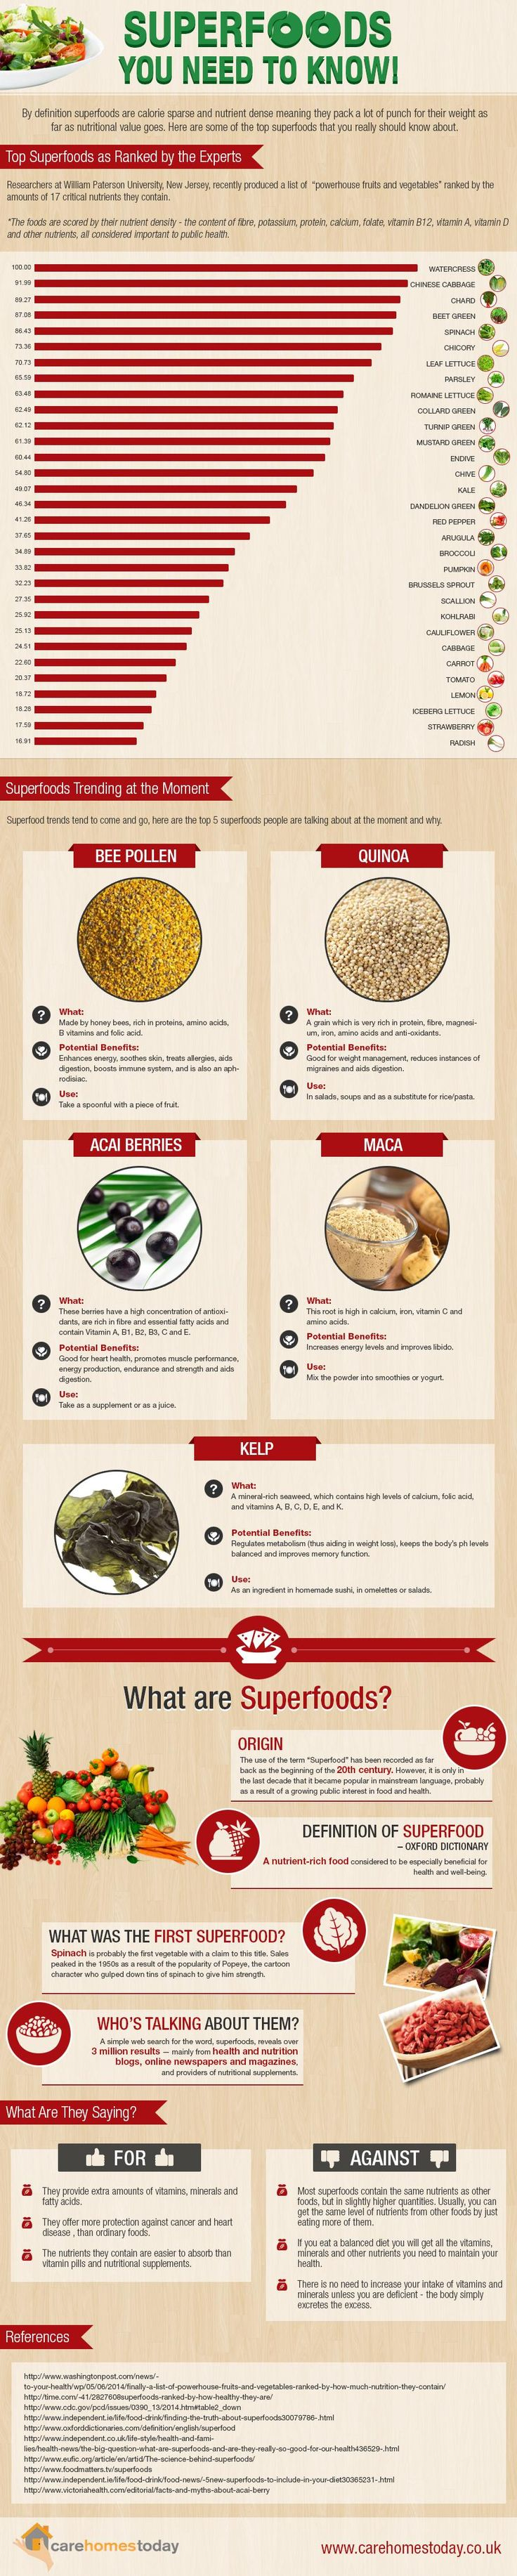 Infographic: Superfoods You Need to Know! #infographic